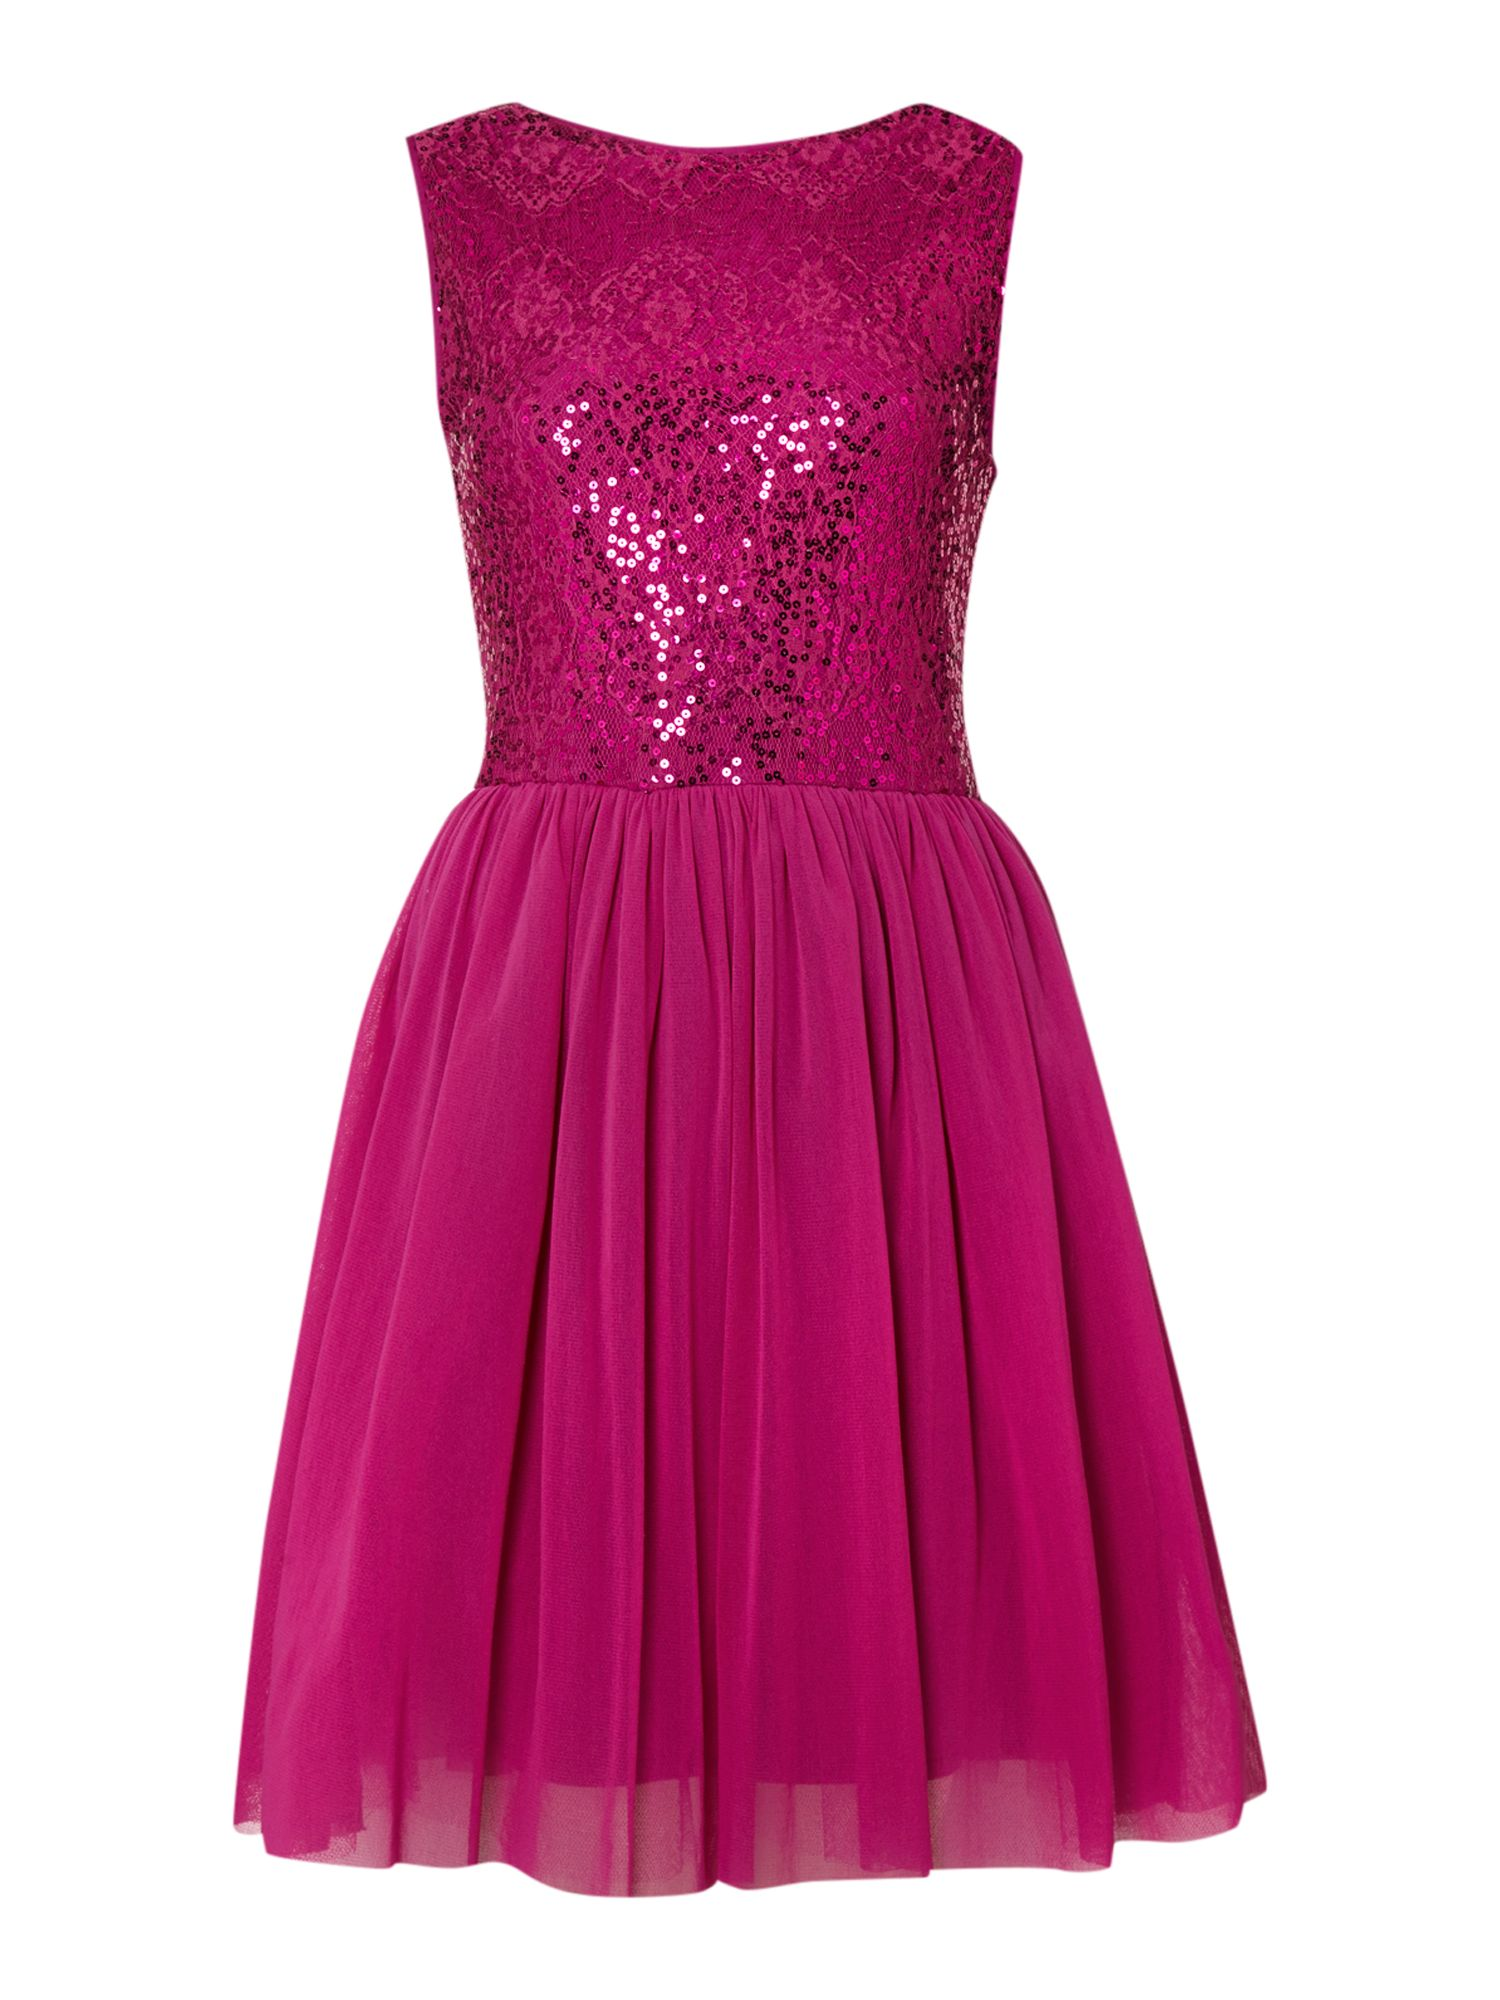 Sequin tulle skater dress